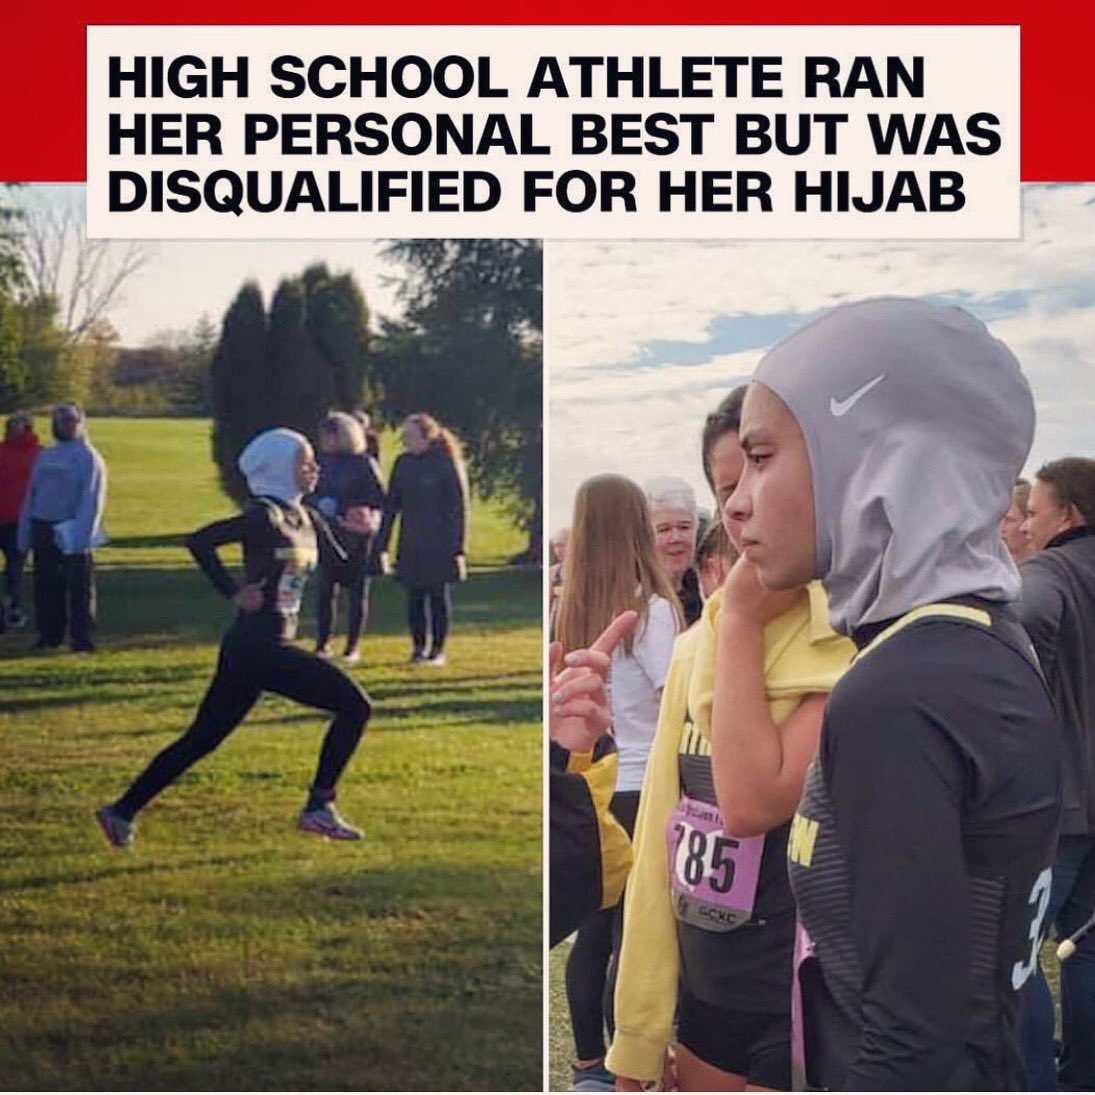 So you telling me they made her run a whole long race and didnt tell her until she finished? Wth!! She shouldn't sacrifice her religion and a part of who she is to RUN, or anything she's passionate about. SMH she's a winner in my eyes !! 🙏🏽